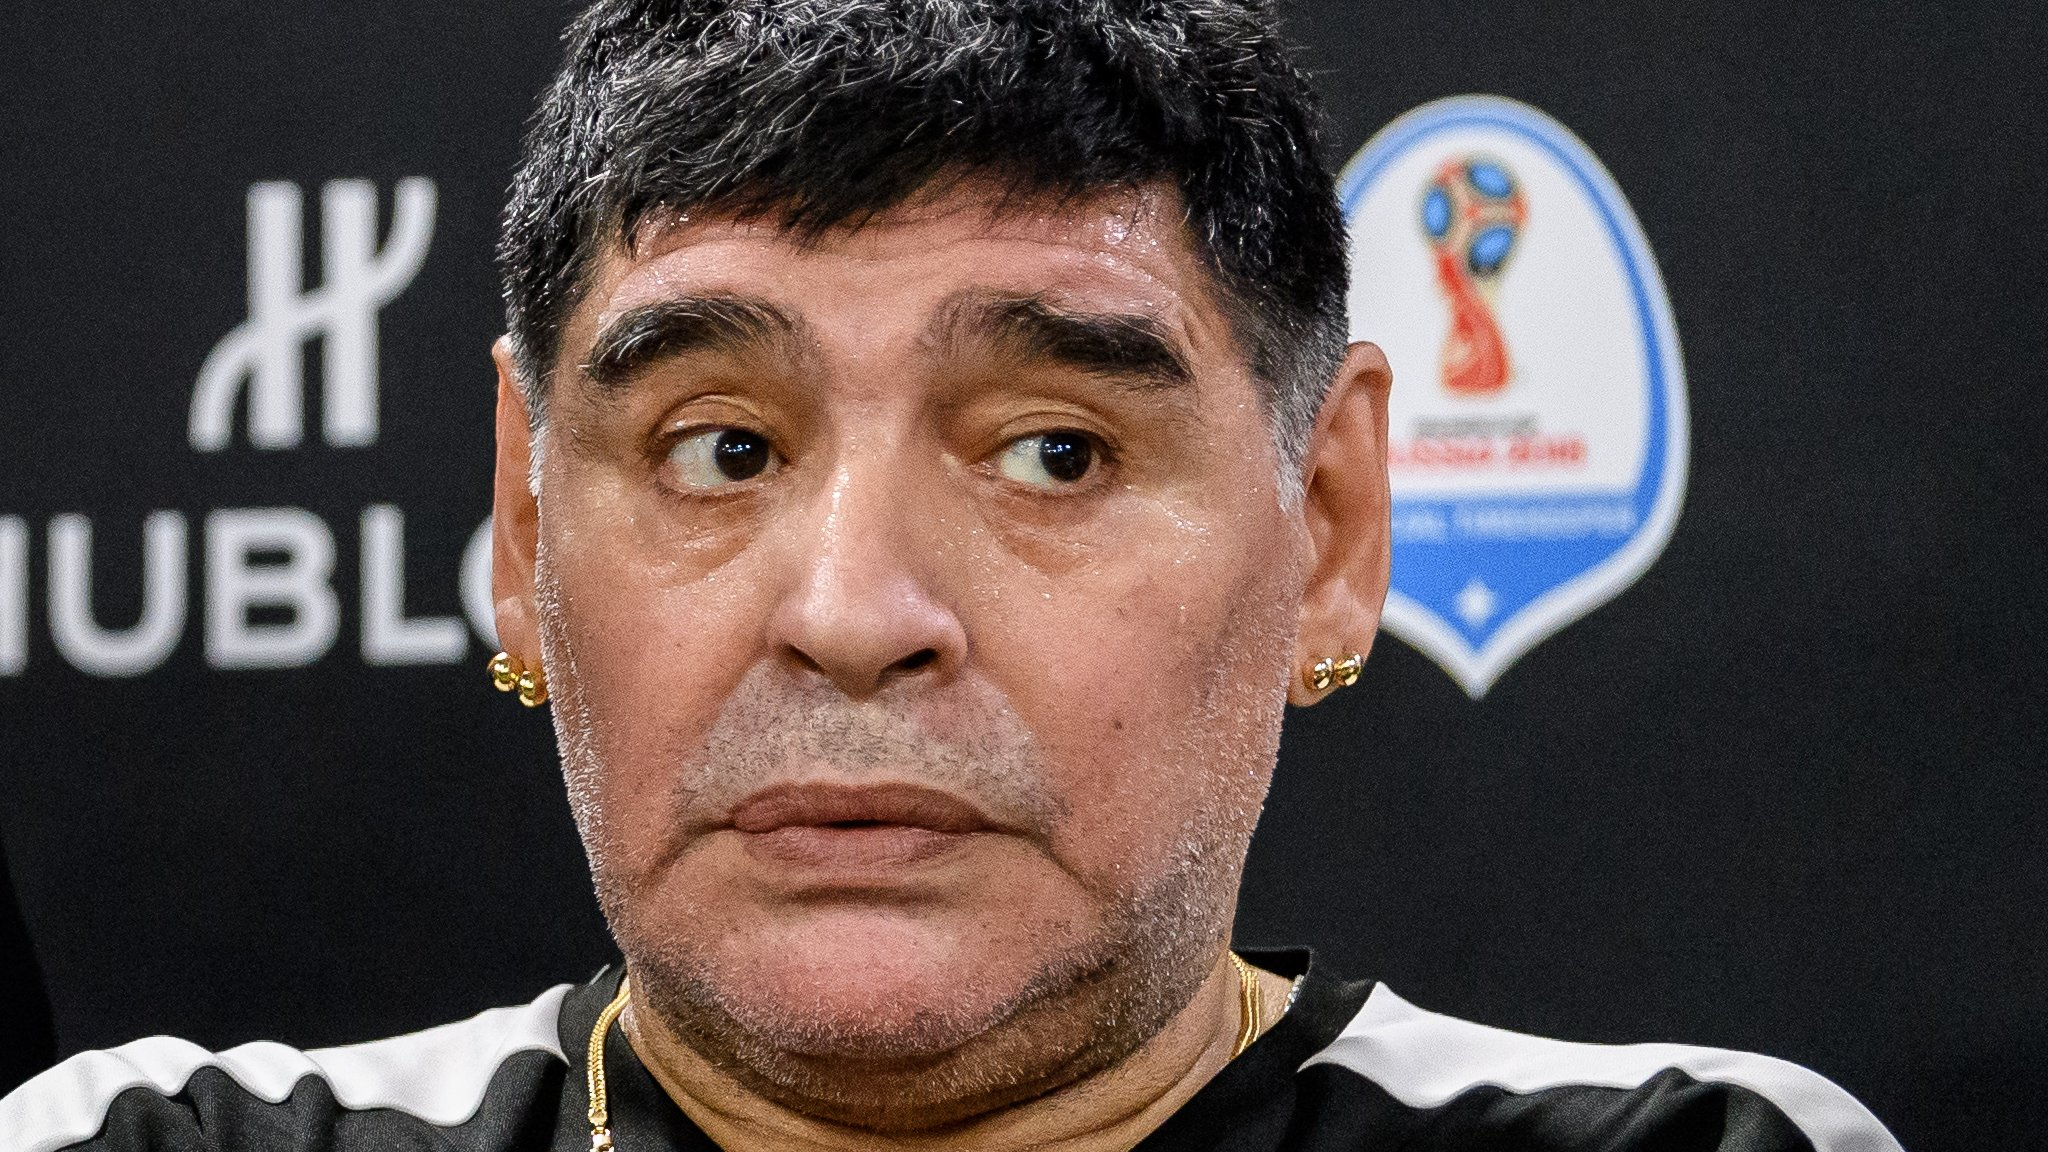 Diego Maradona: Argentina are a 'disgrace' and Jorge Sampaoli 'can't go home playing like that'